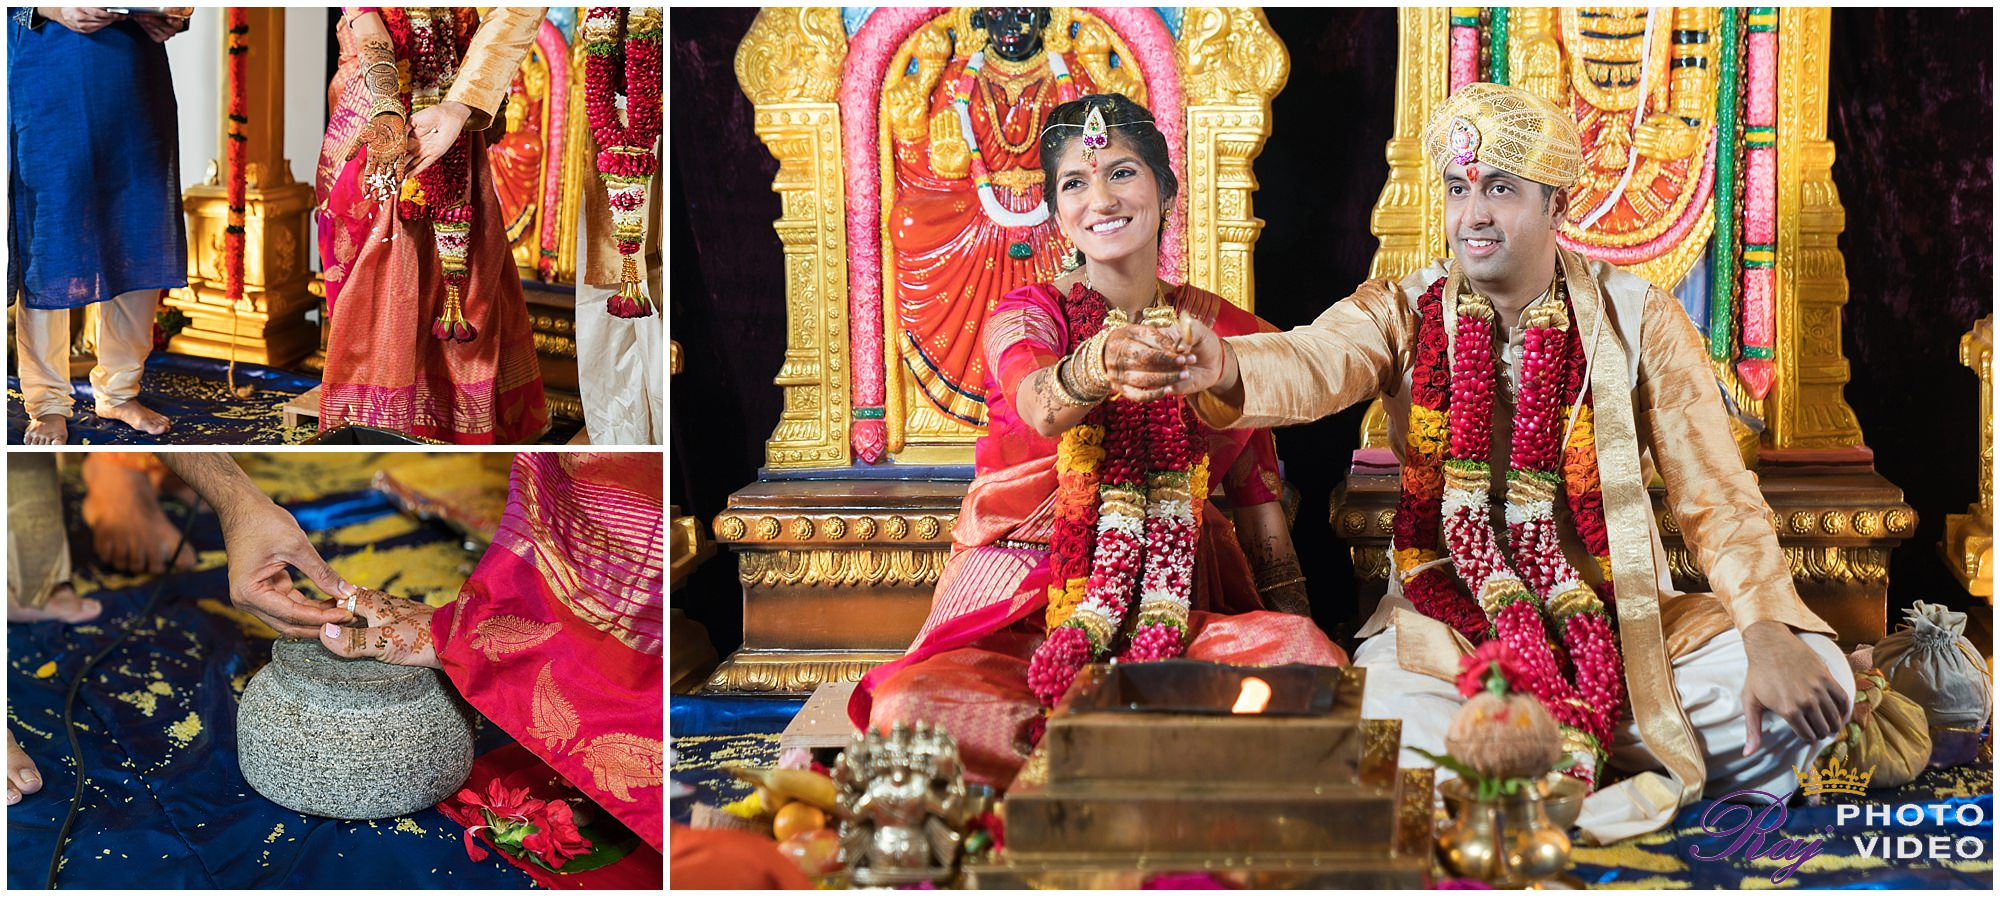 Sri_Venkata_Krishna_Kshetra_Temple_Tempe_Arizona_Indian_Wedding_Sapna_Shyam-11.jpg